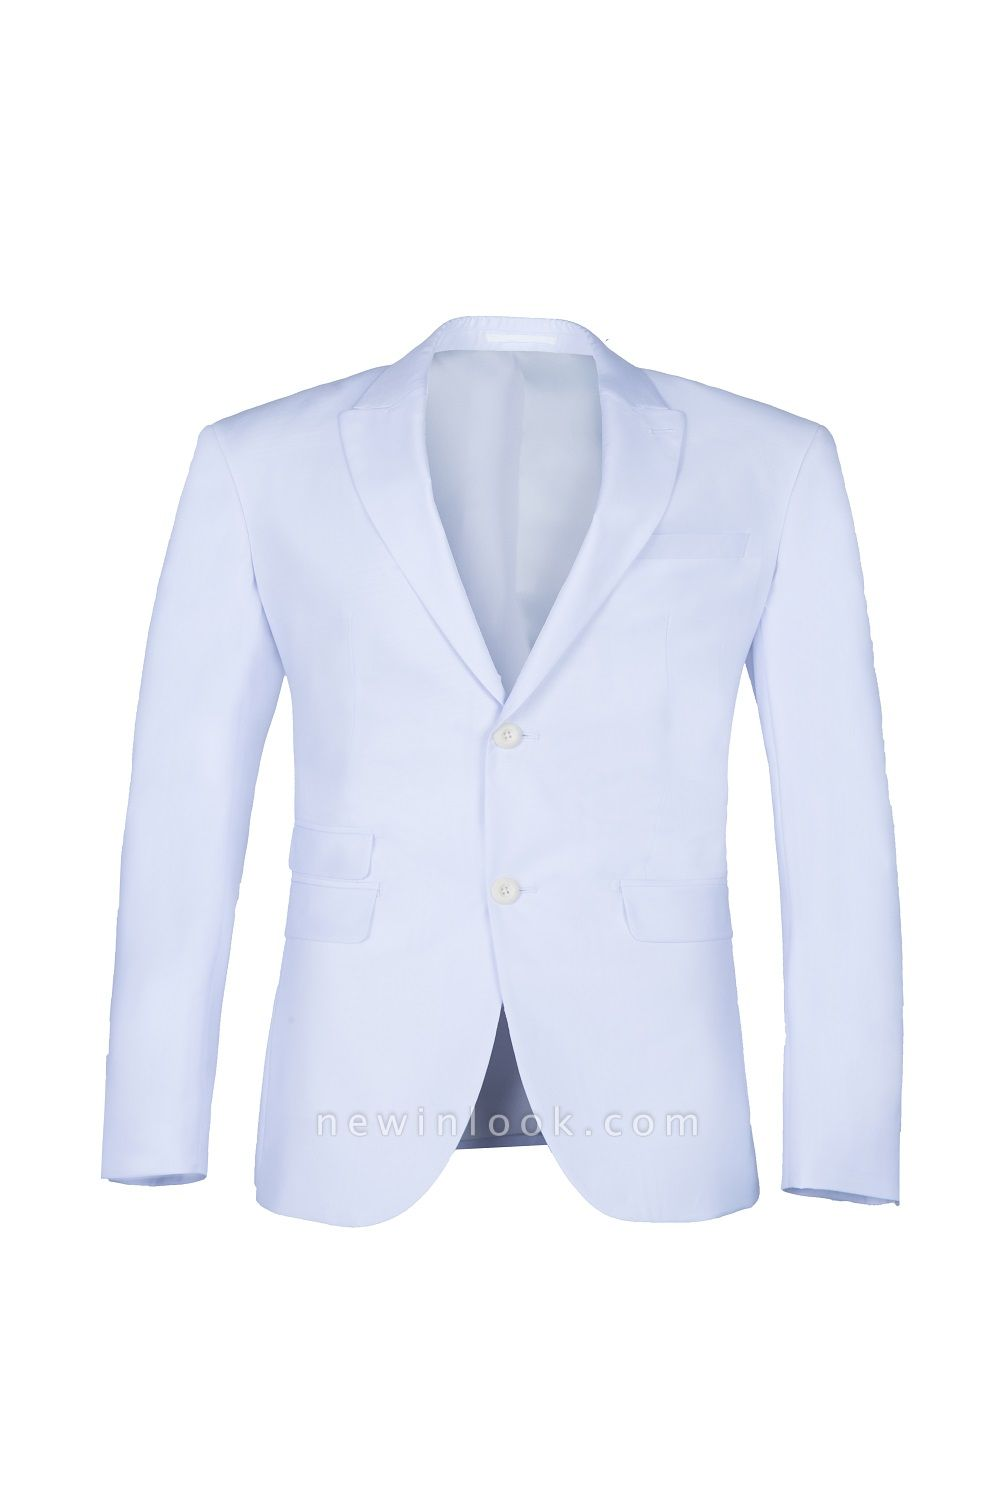 quinceanera Prom Suits White Peak Lapel Two Button Single Breasted